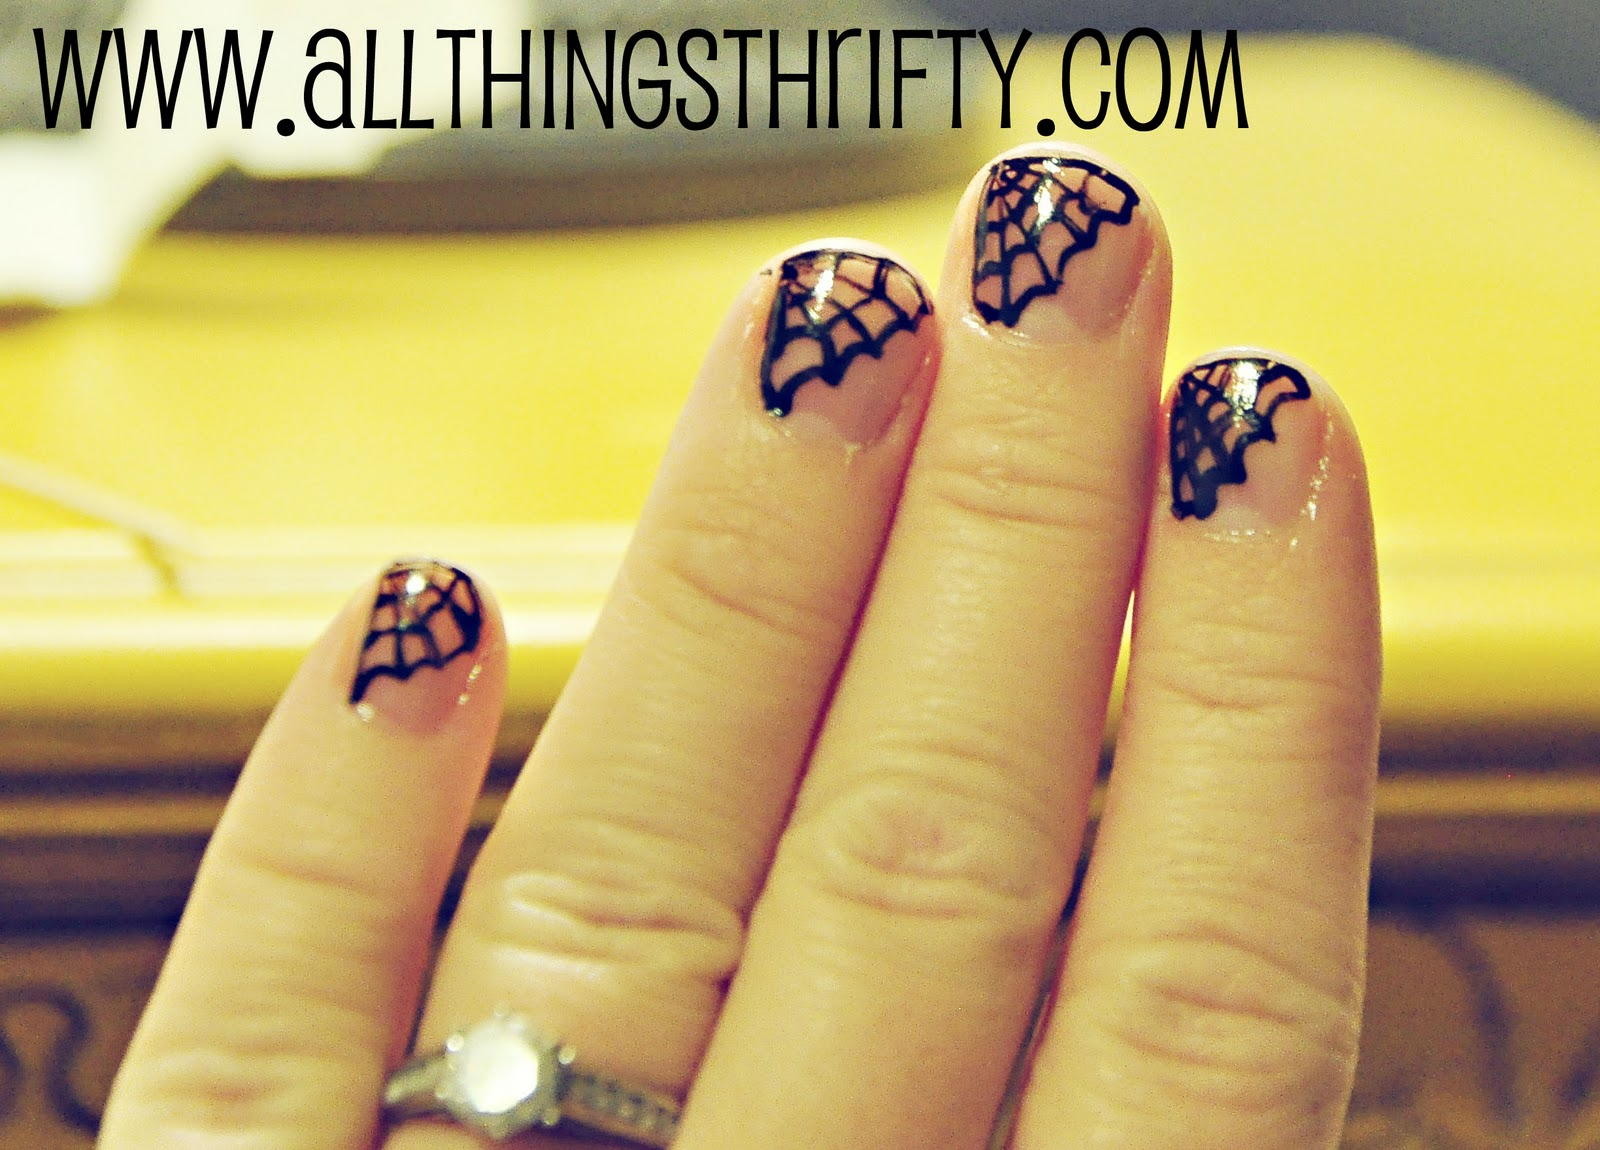 Halloween Nail Designs, All Things Girlie! | All Things Thrifty